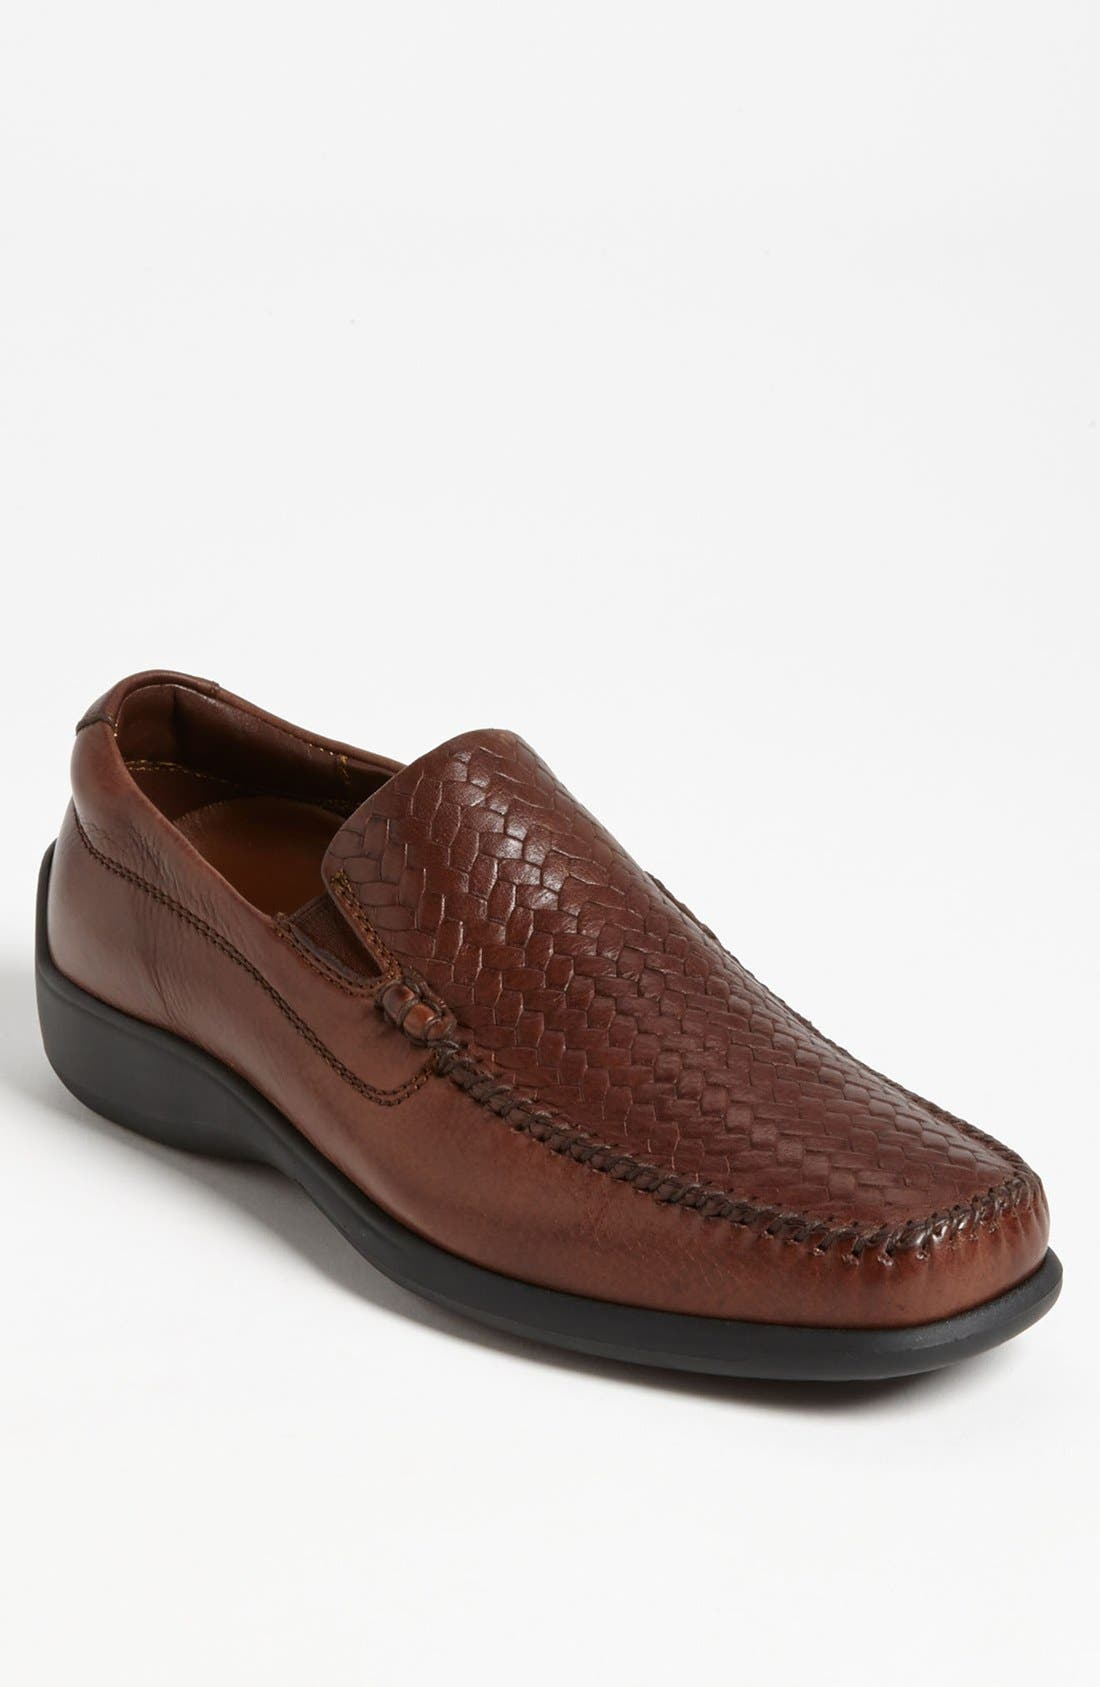 'Palermo' Loafer,                             Main thumbnail 1, color,                             200